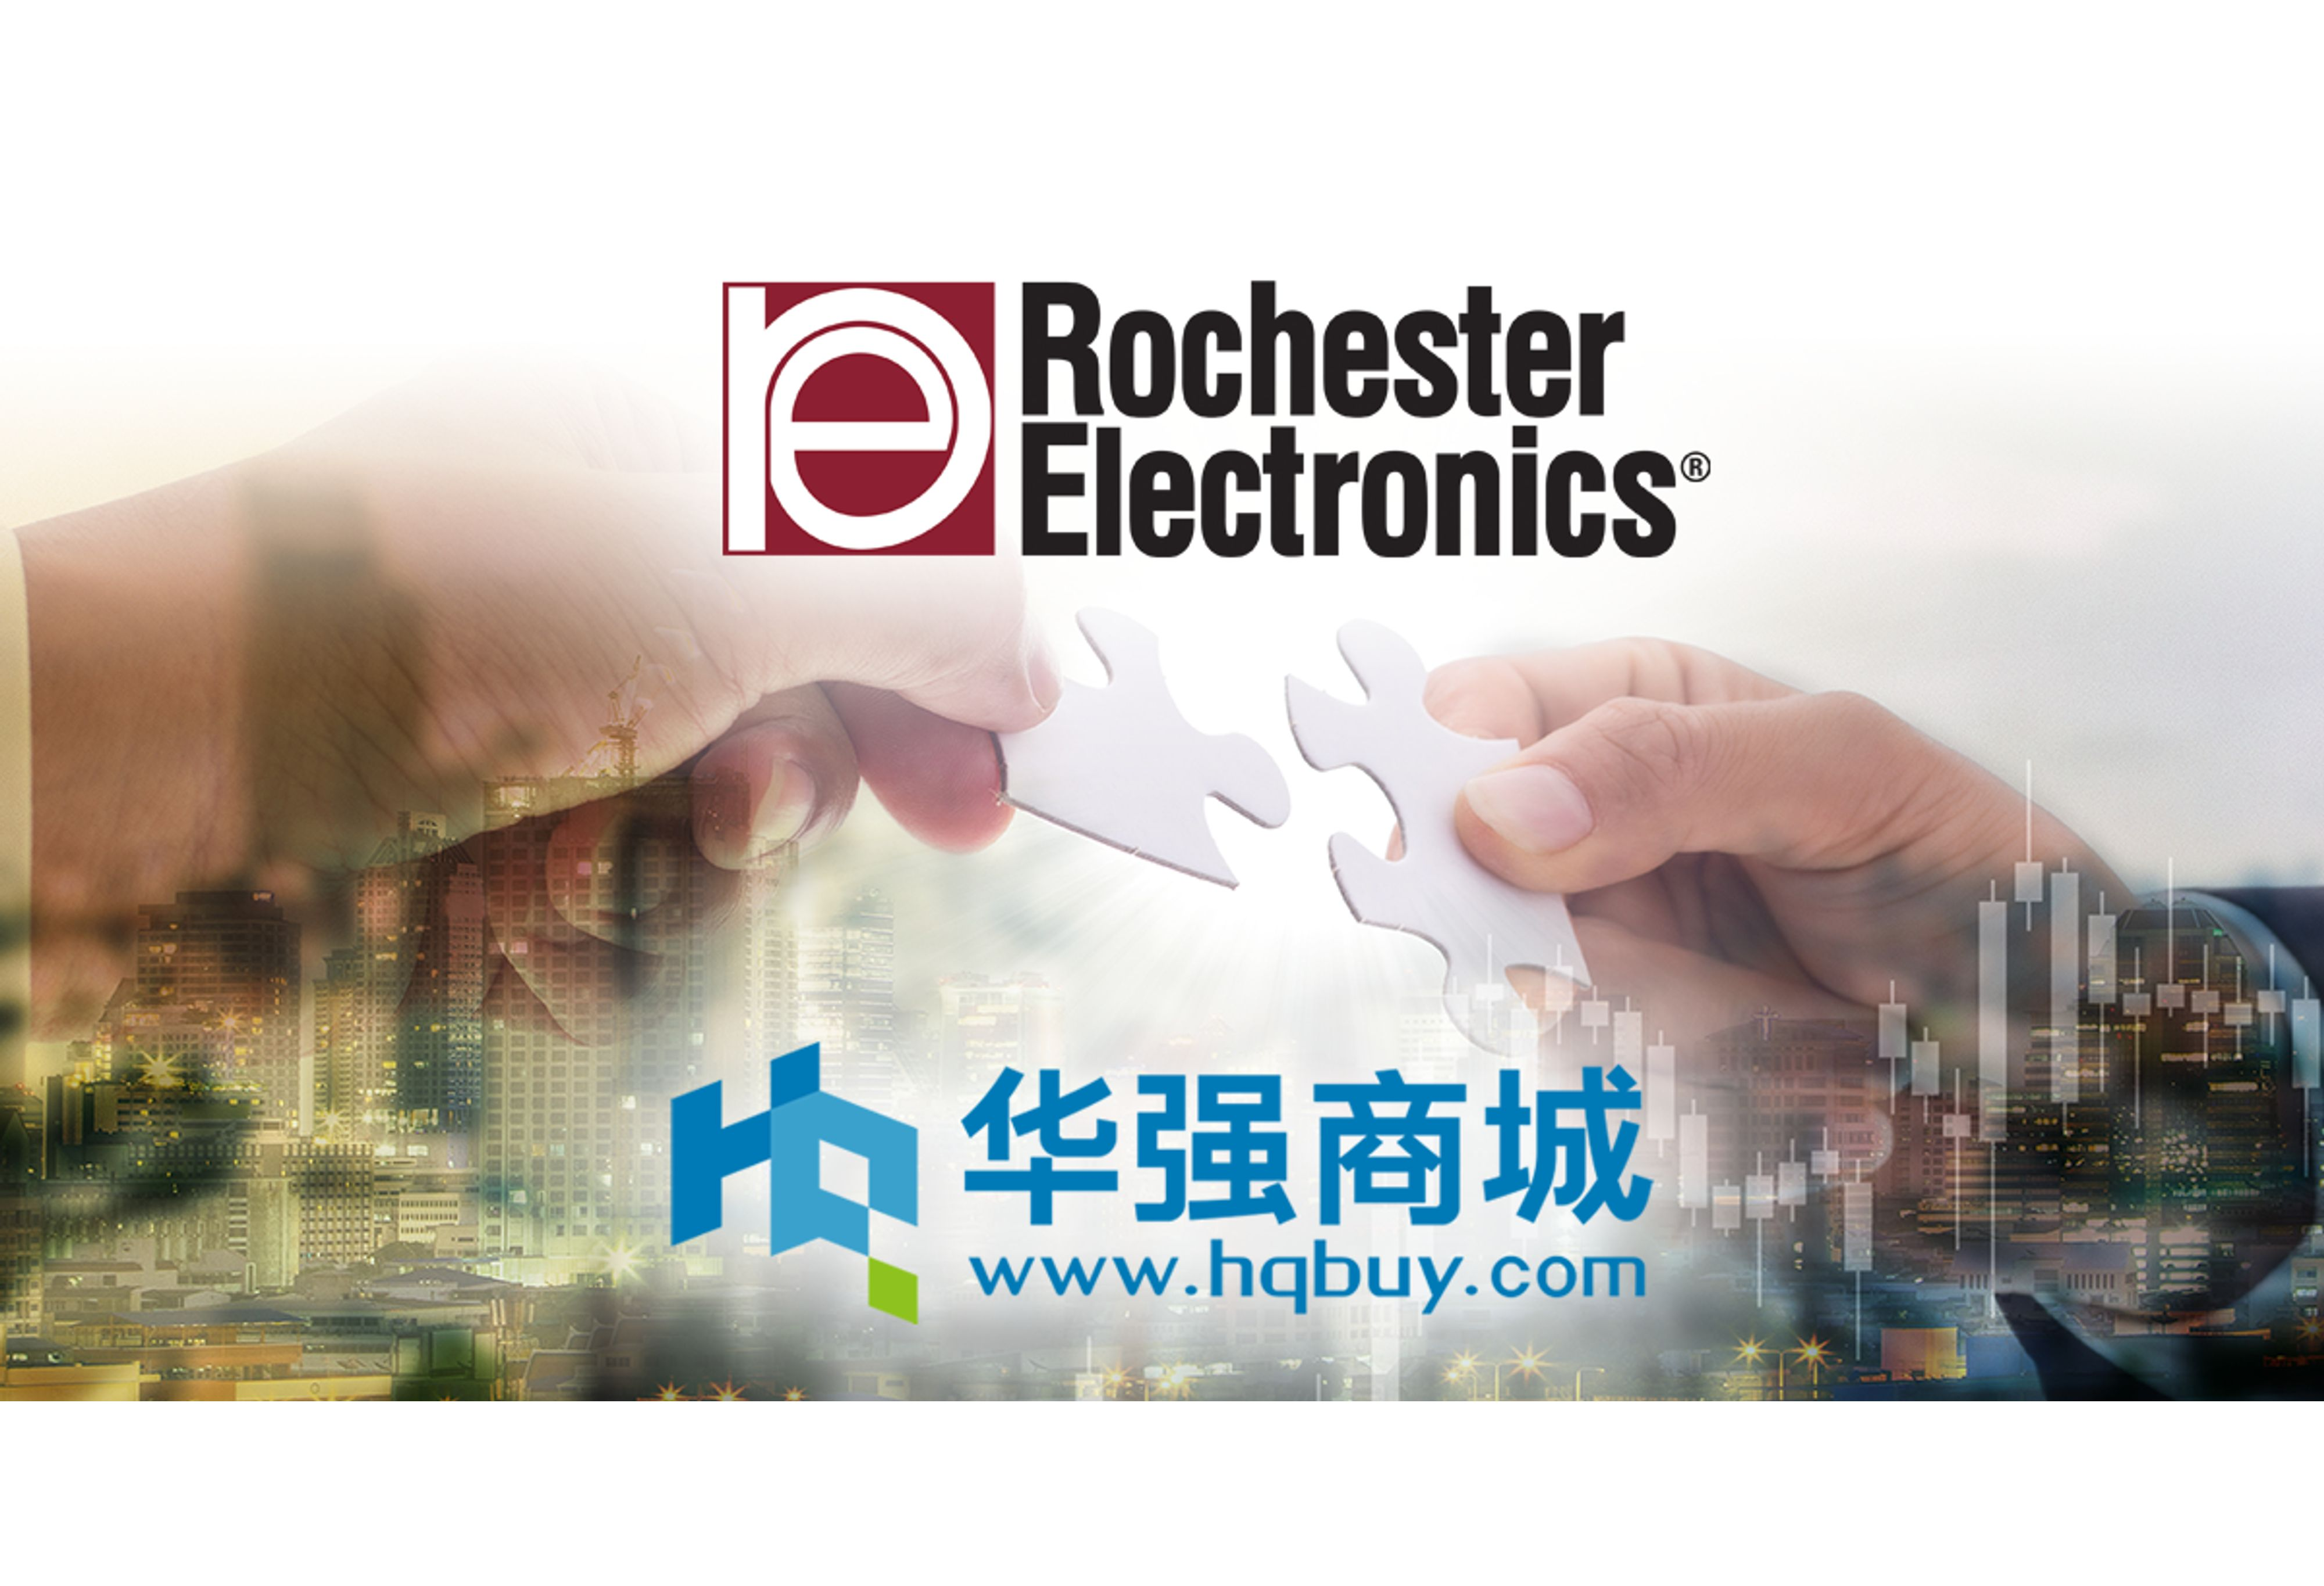 HQBUY Rochester Electronics